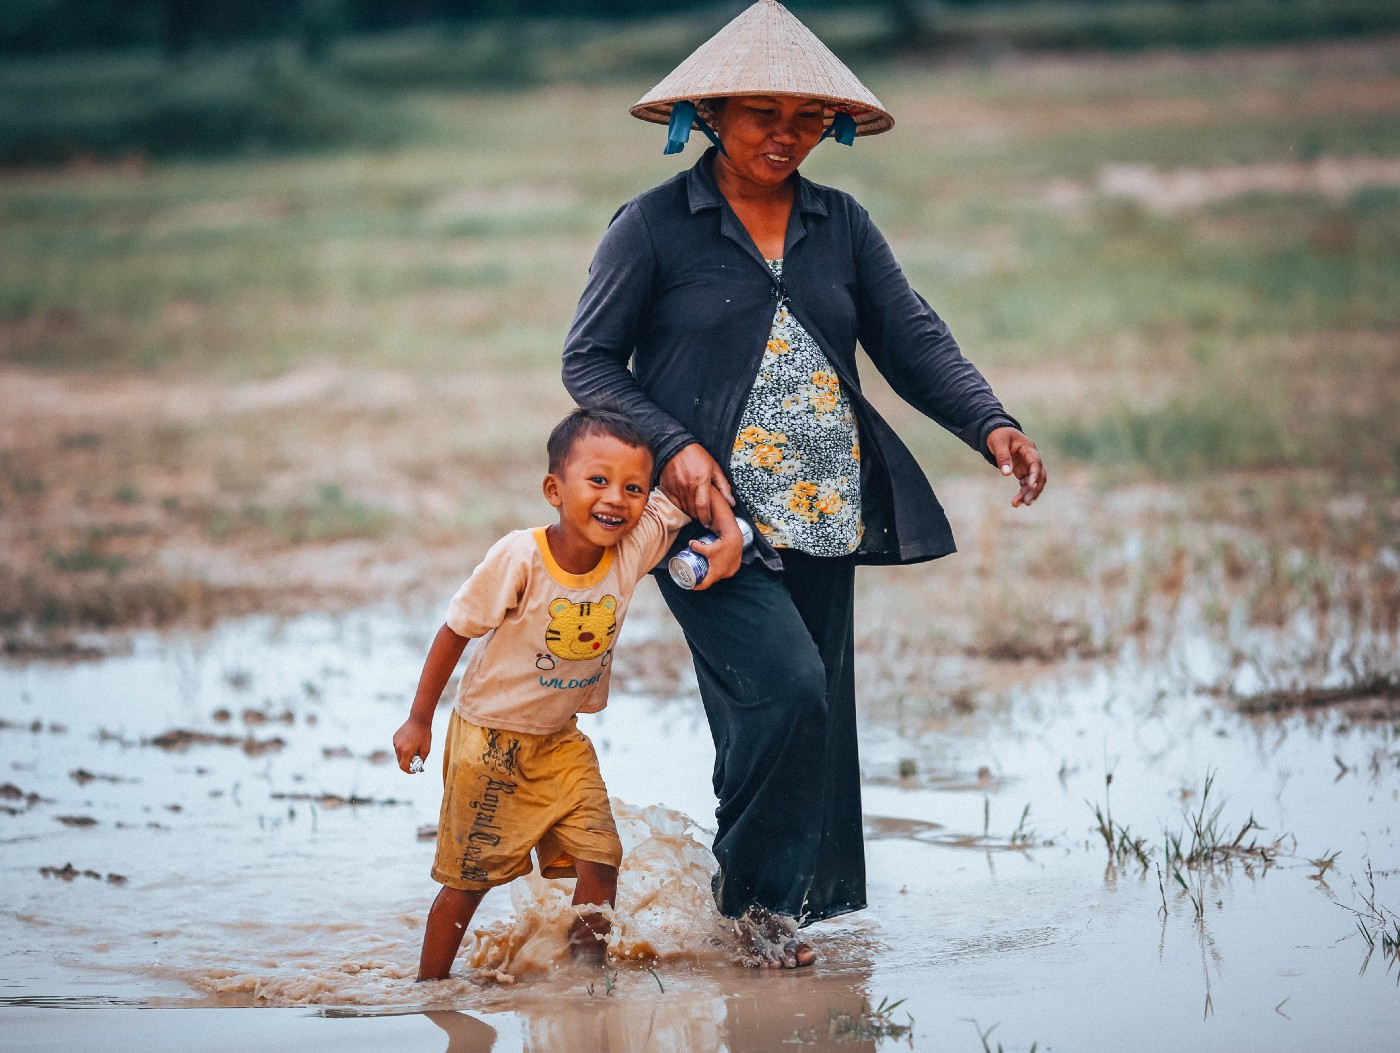 Asian woman and child walking through water.